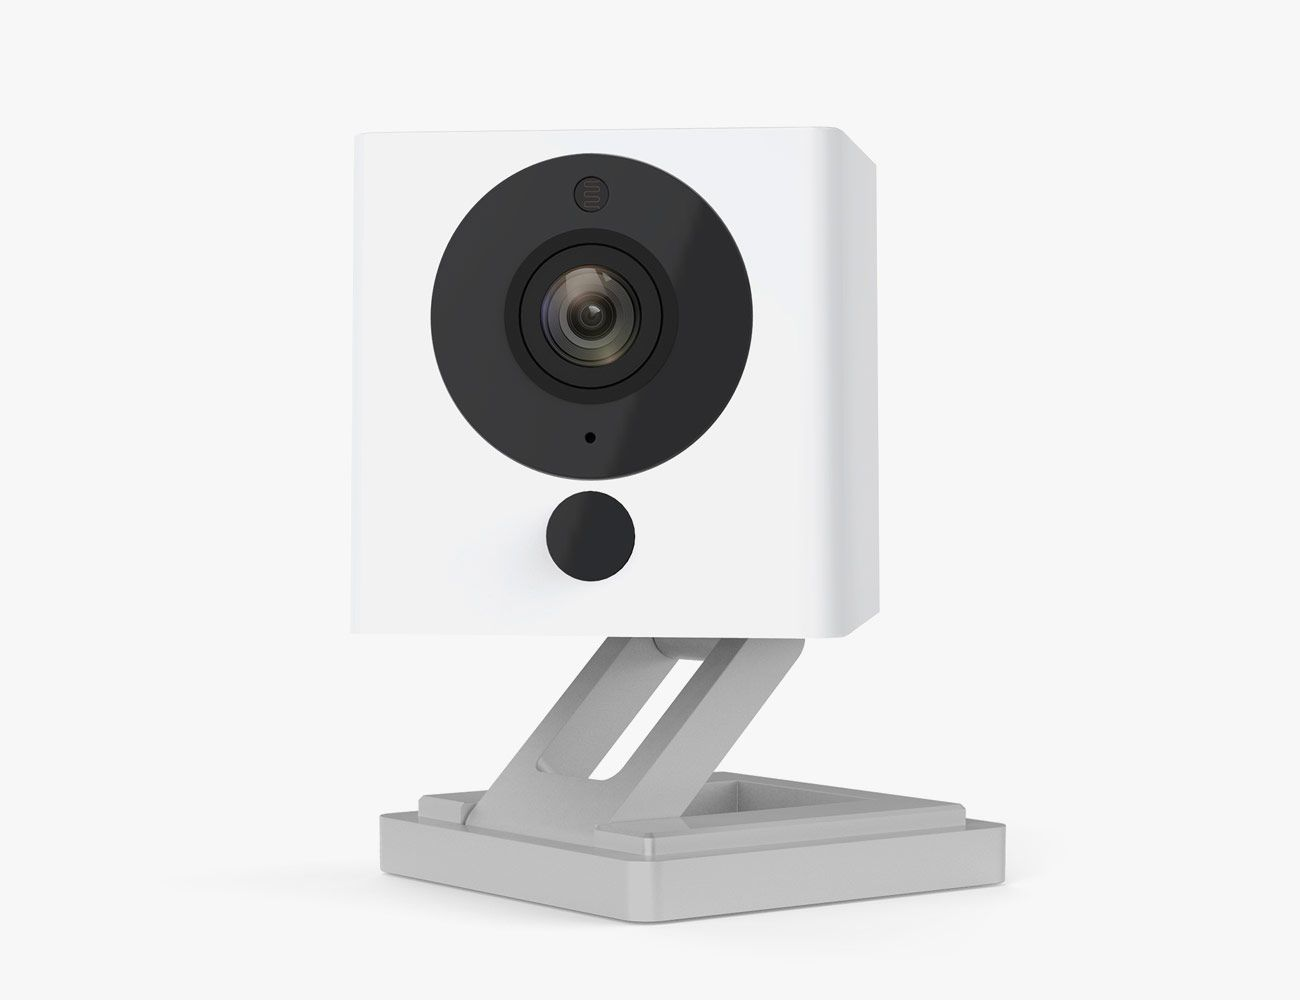 eaae0dc037b9 The Best Home Security Cameras of 2018 | Tech | Security cameras for ...